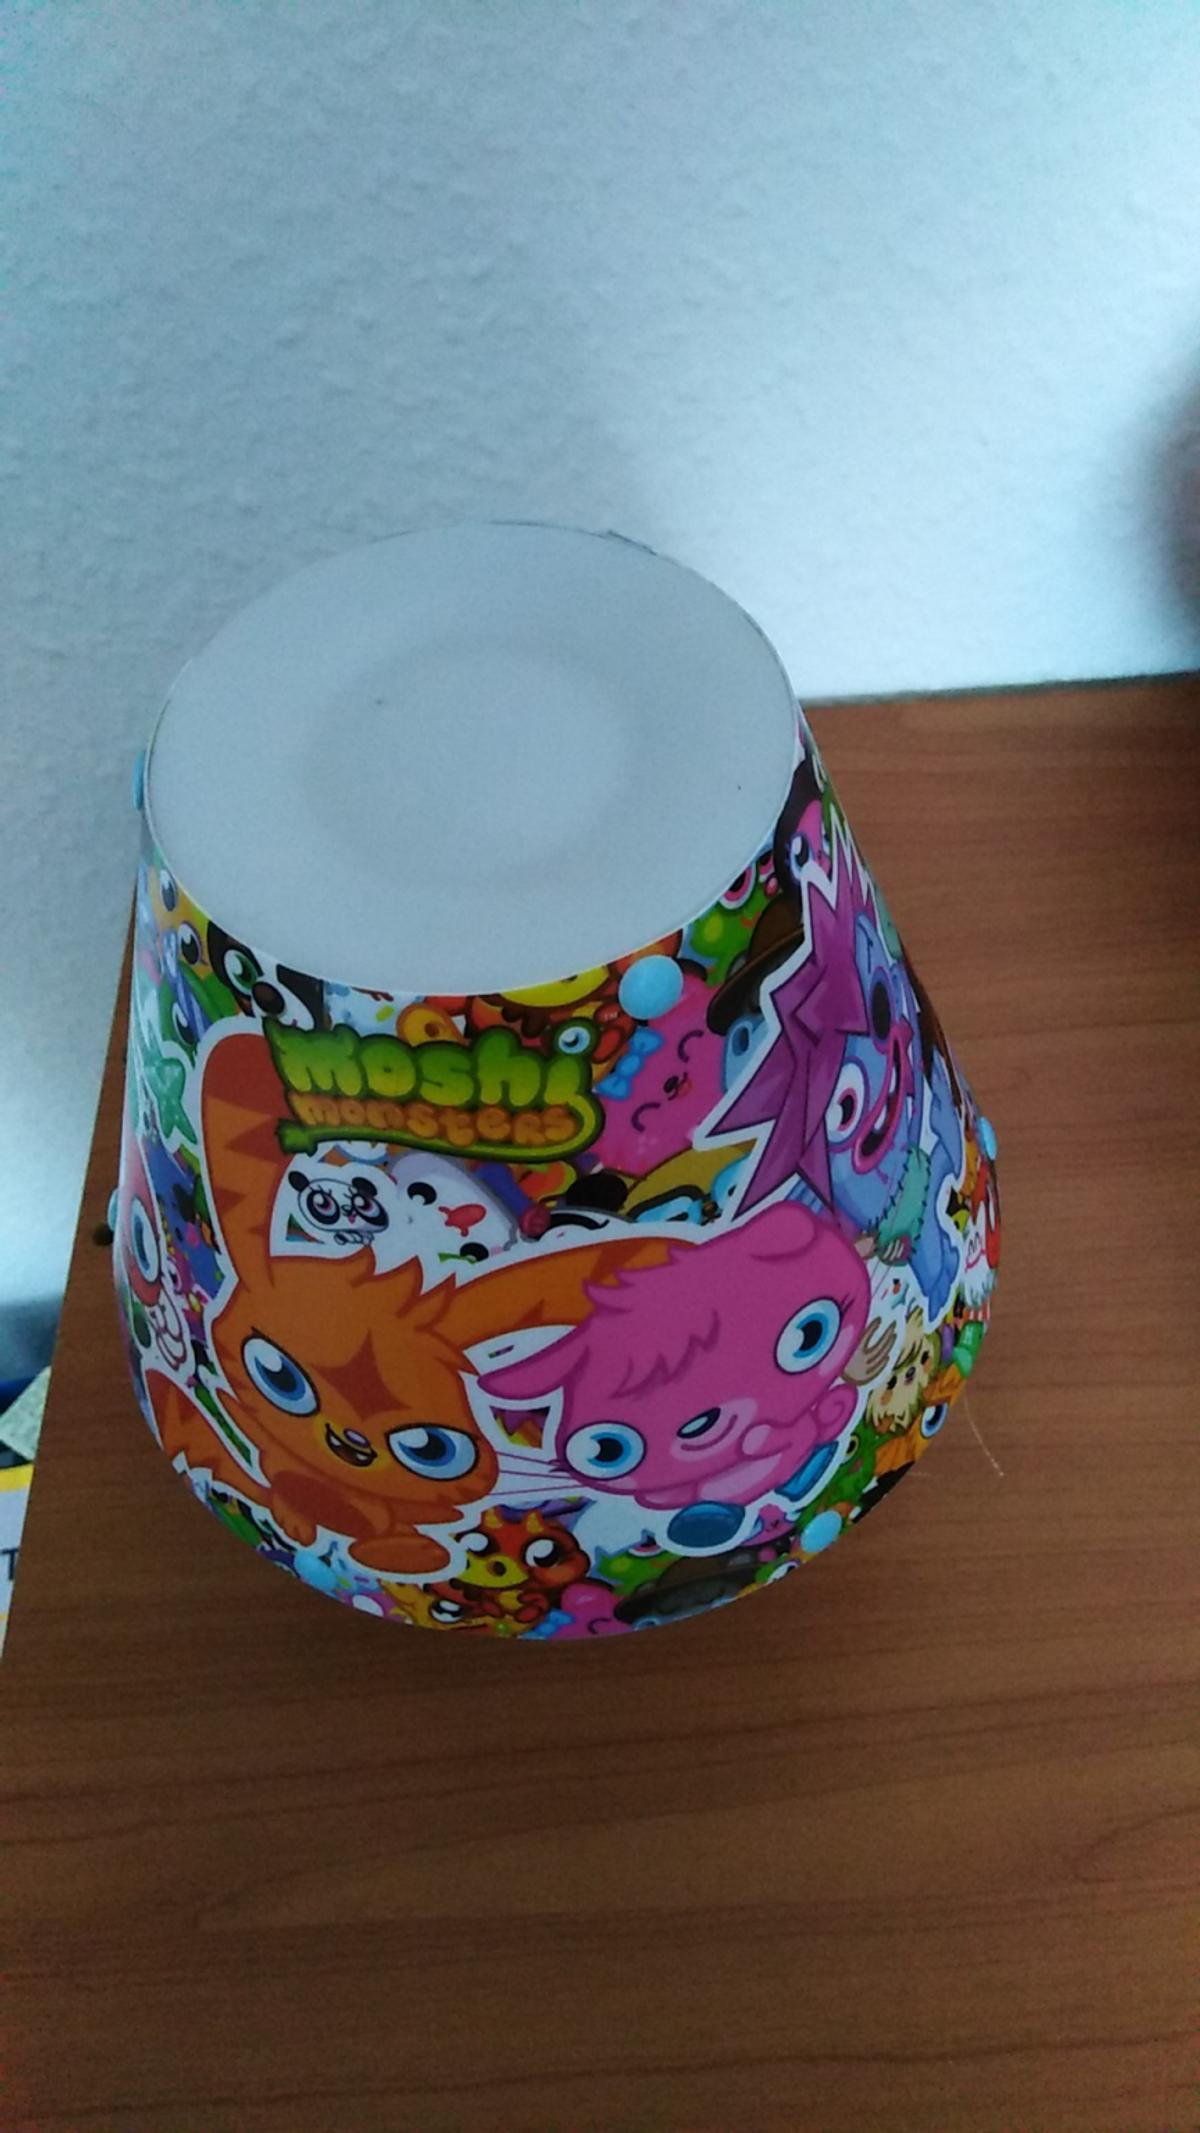 Moshi monster lamp  Ideal for any child's room  As seen in pic Sold as seen  £2  Collection from Sutton-in-Ashfield No posting